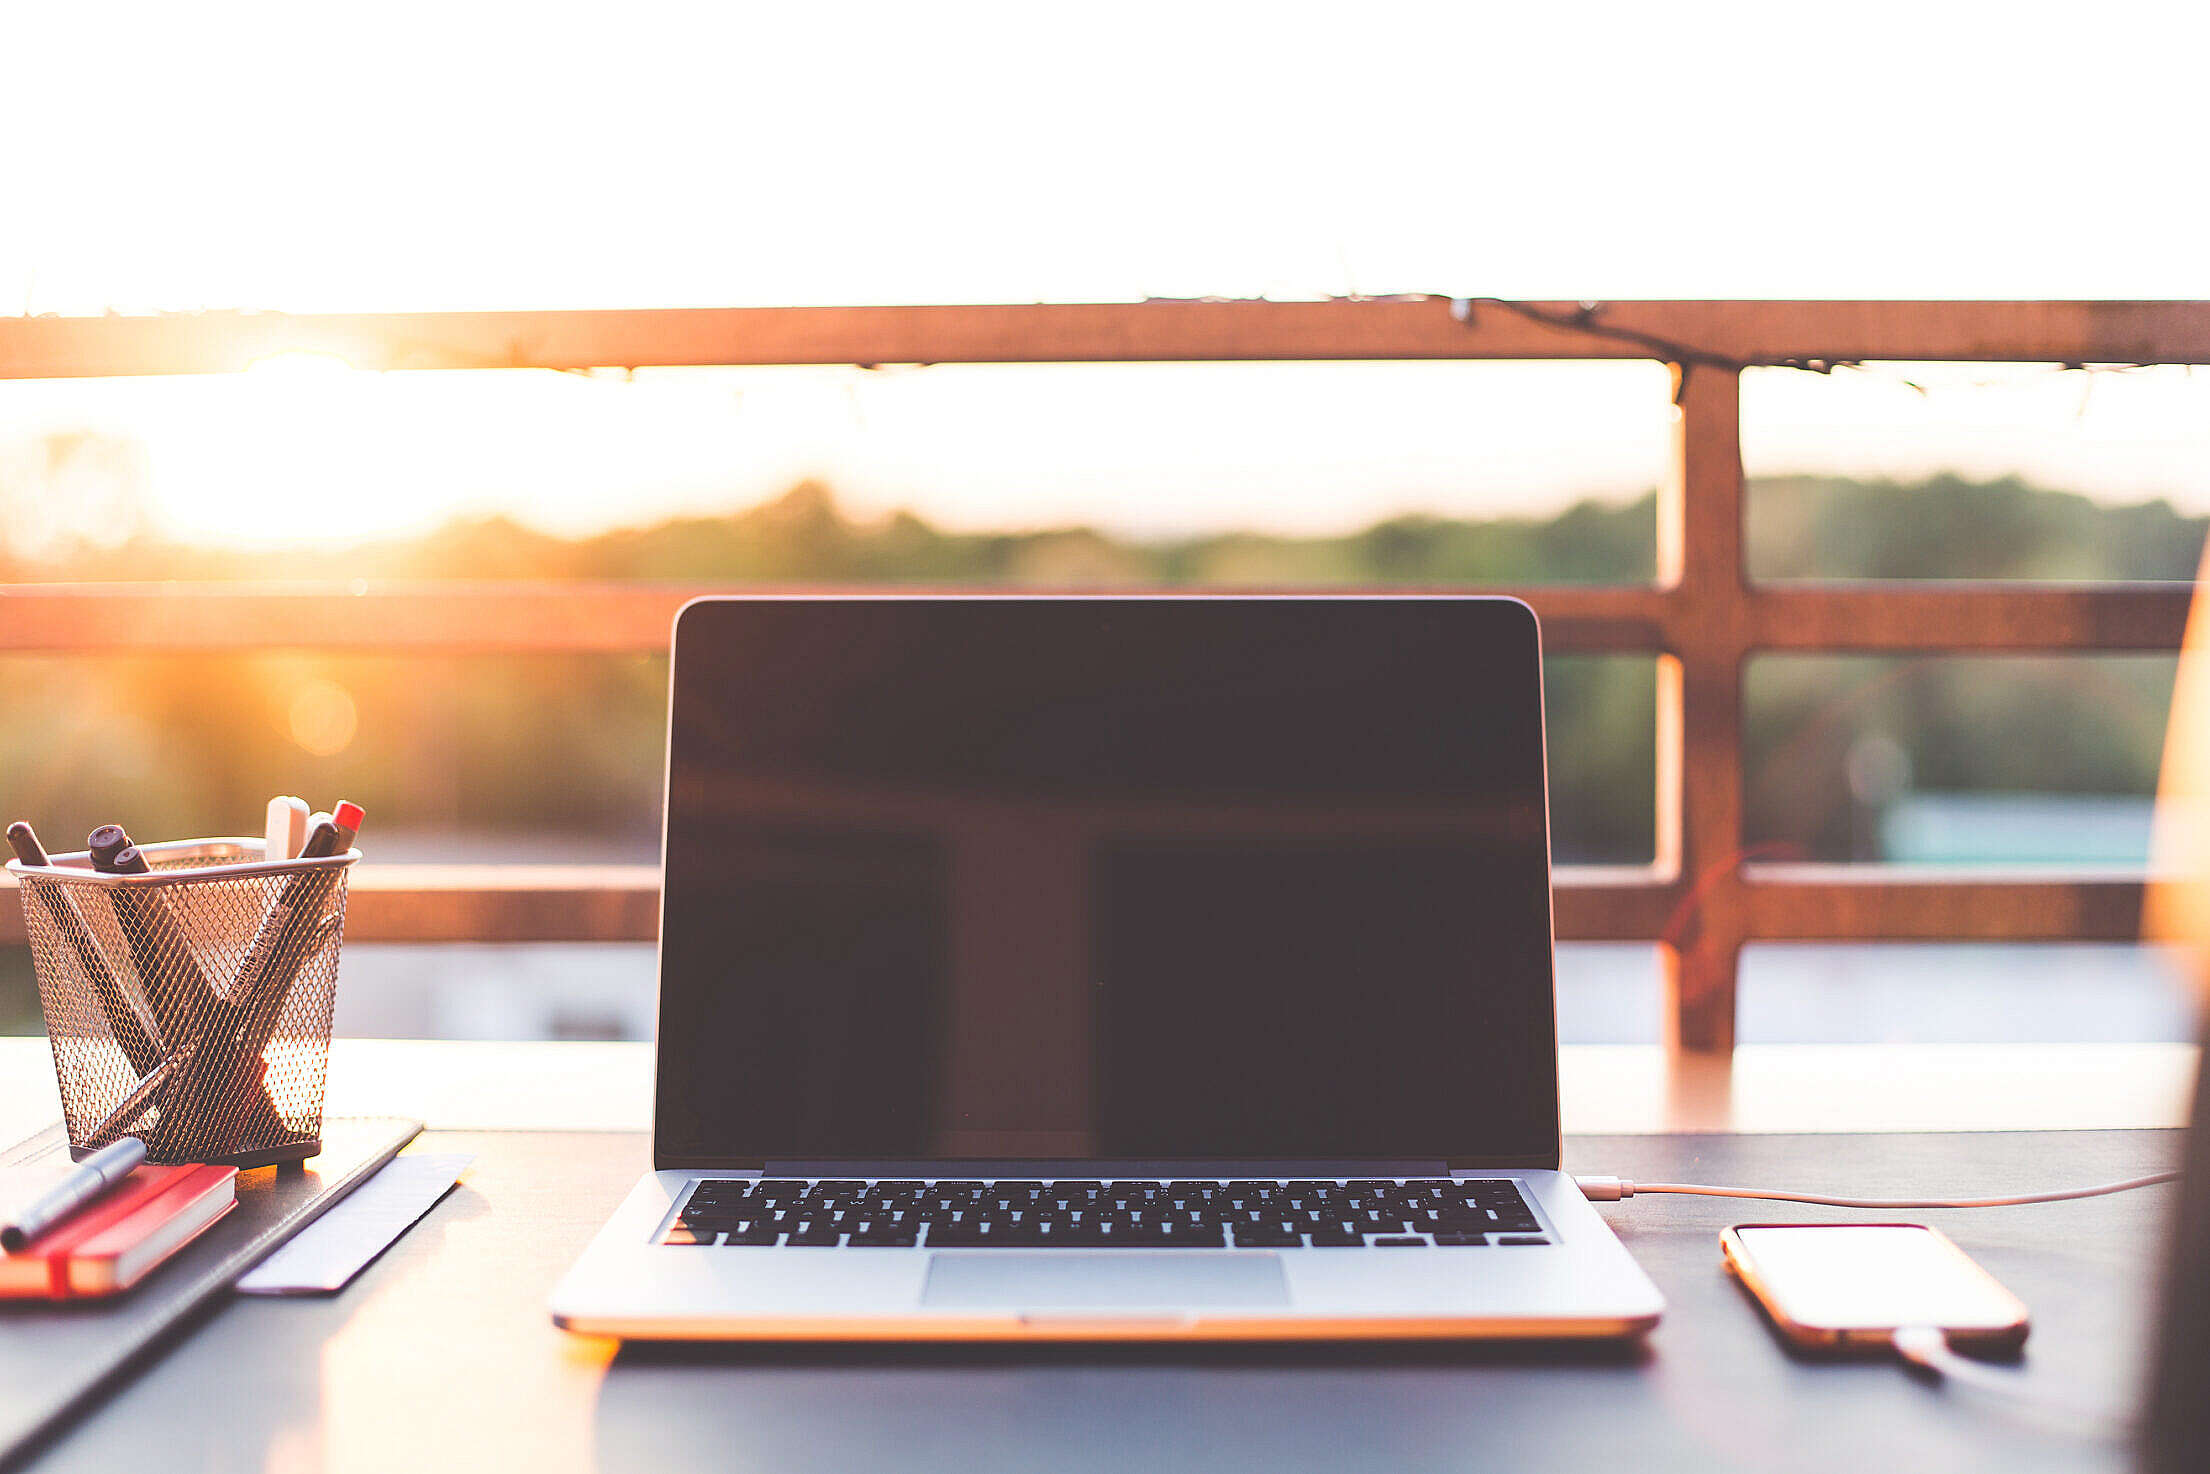 Sunset Home Office Working with Laptop on the Garden Free Stock Photo